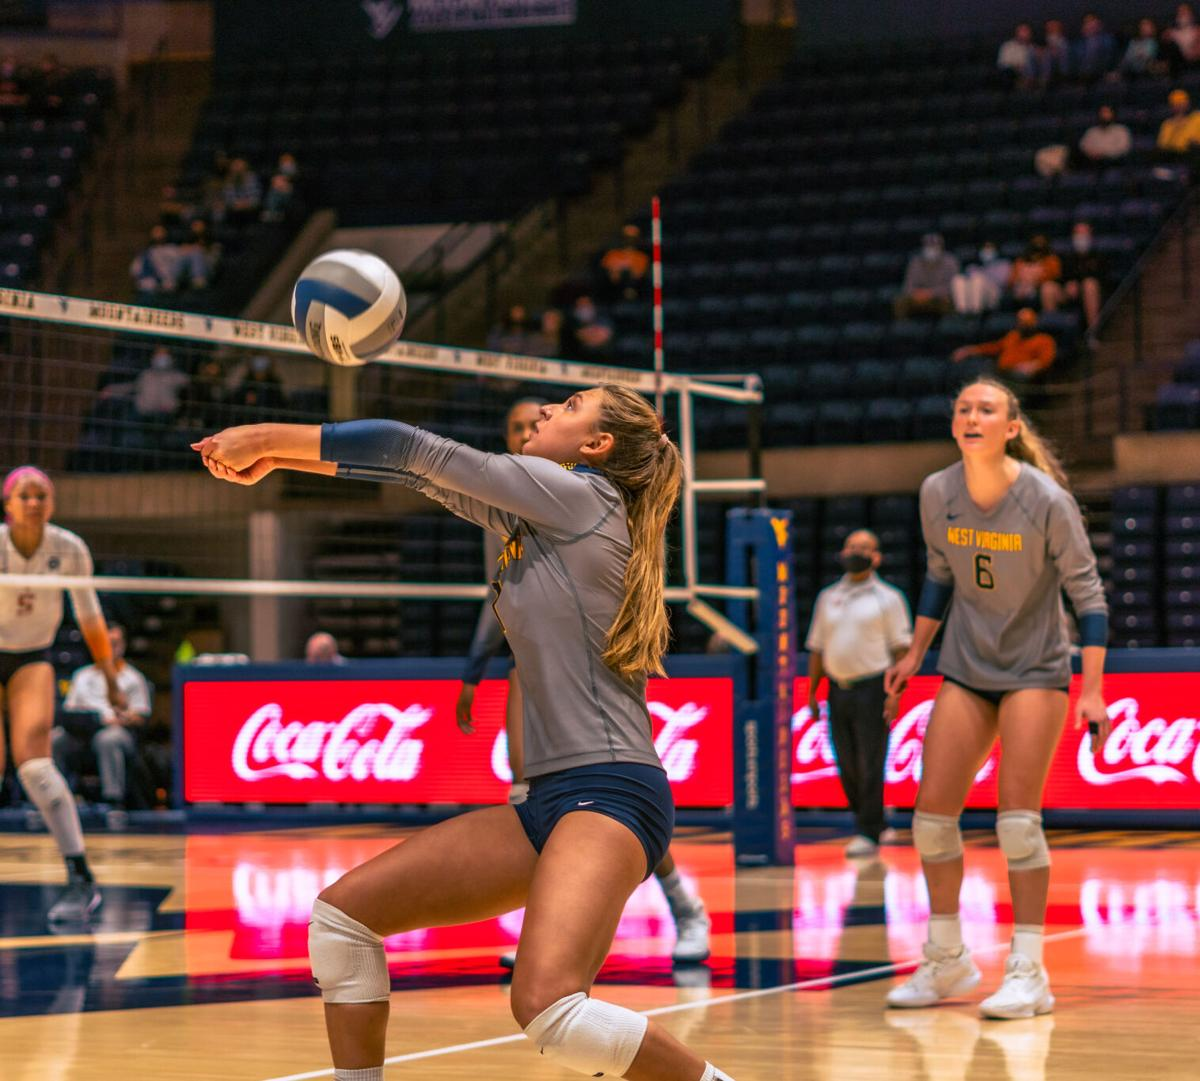 WVU Women's volleyball vs Texas. November 13, 2020.